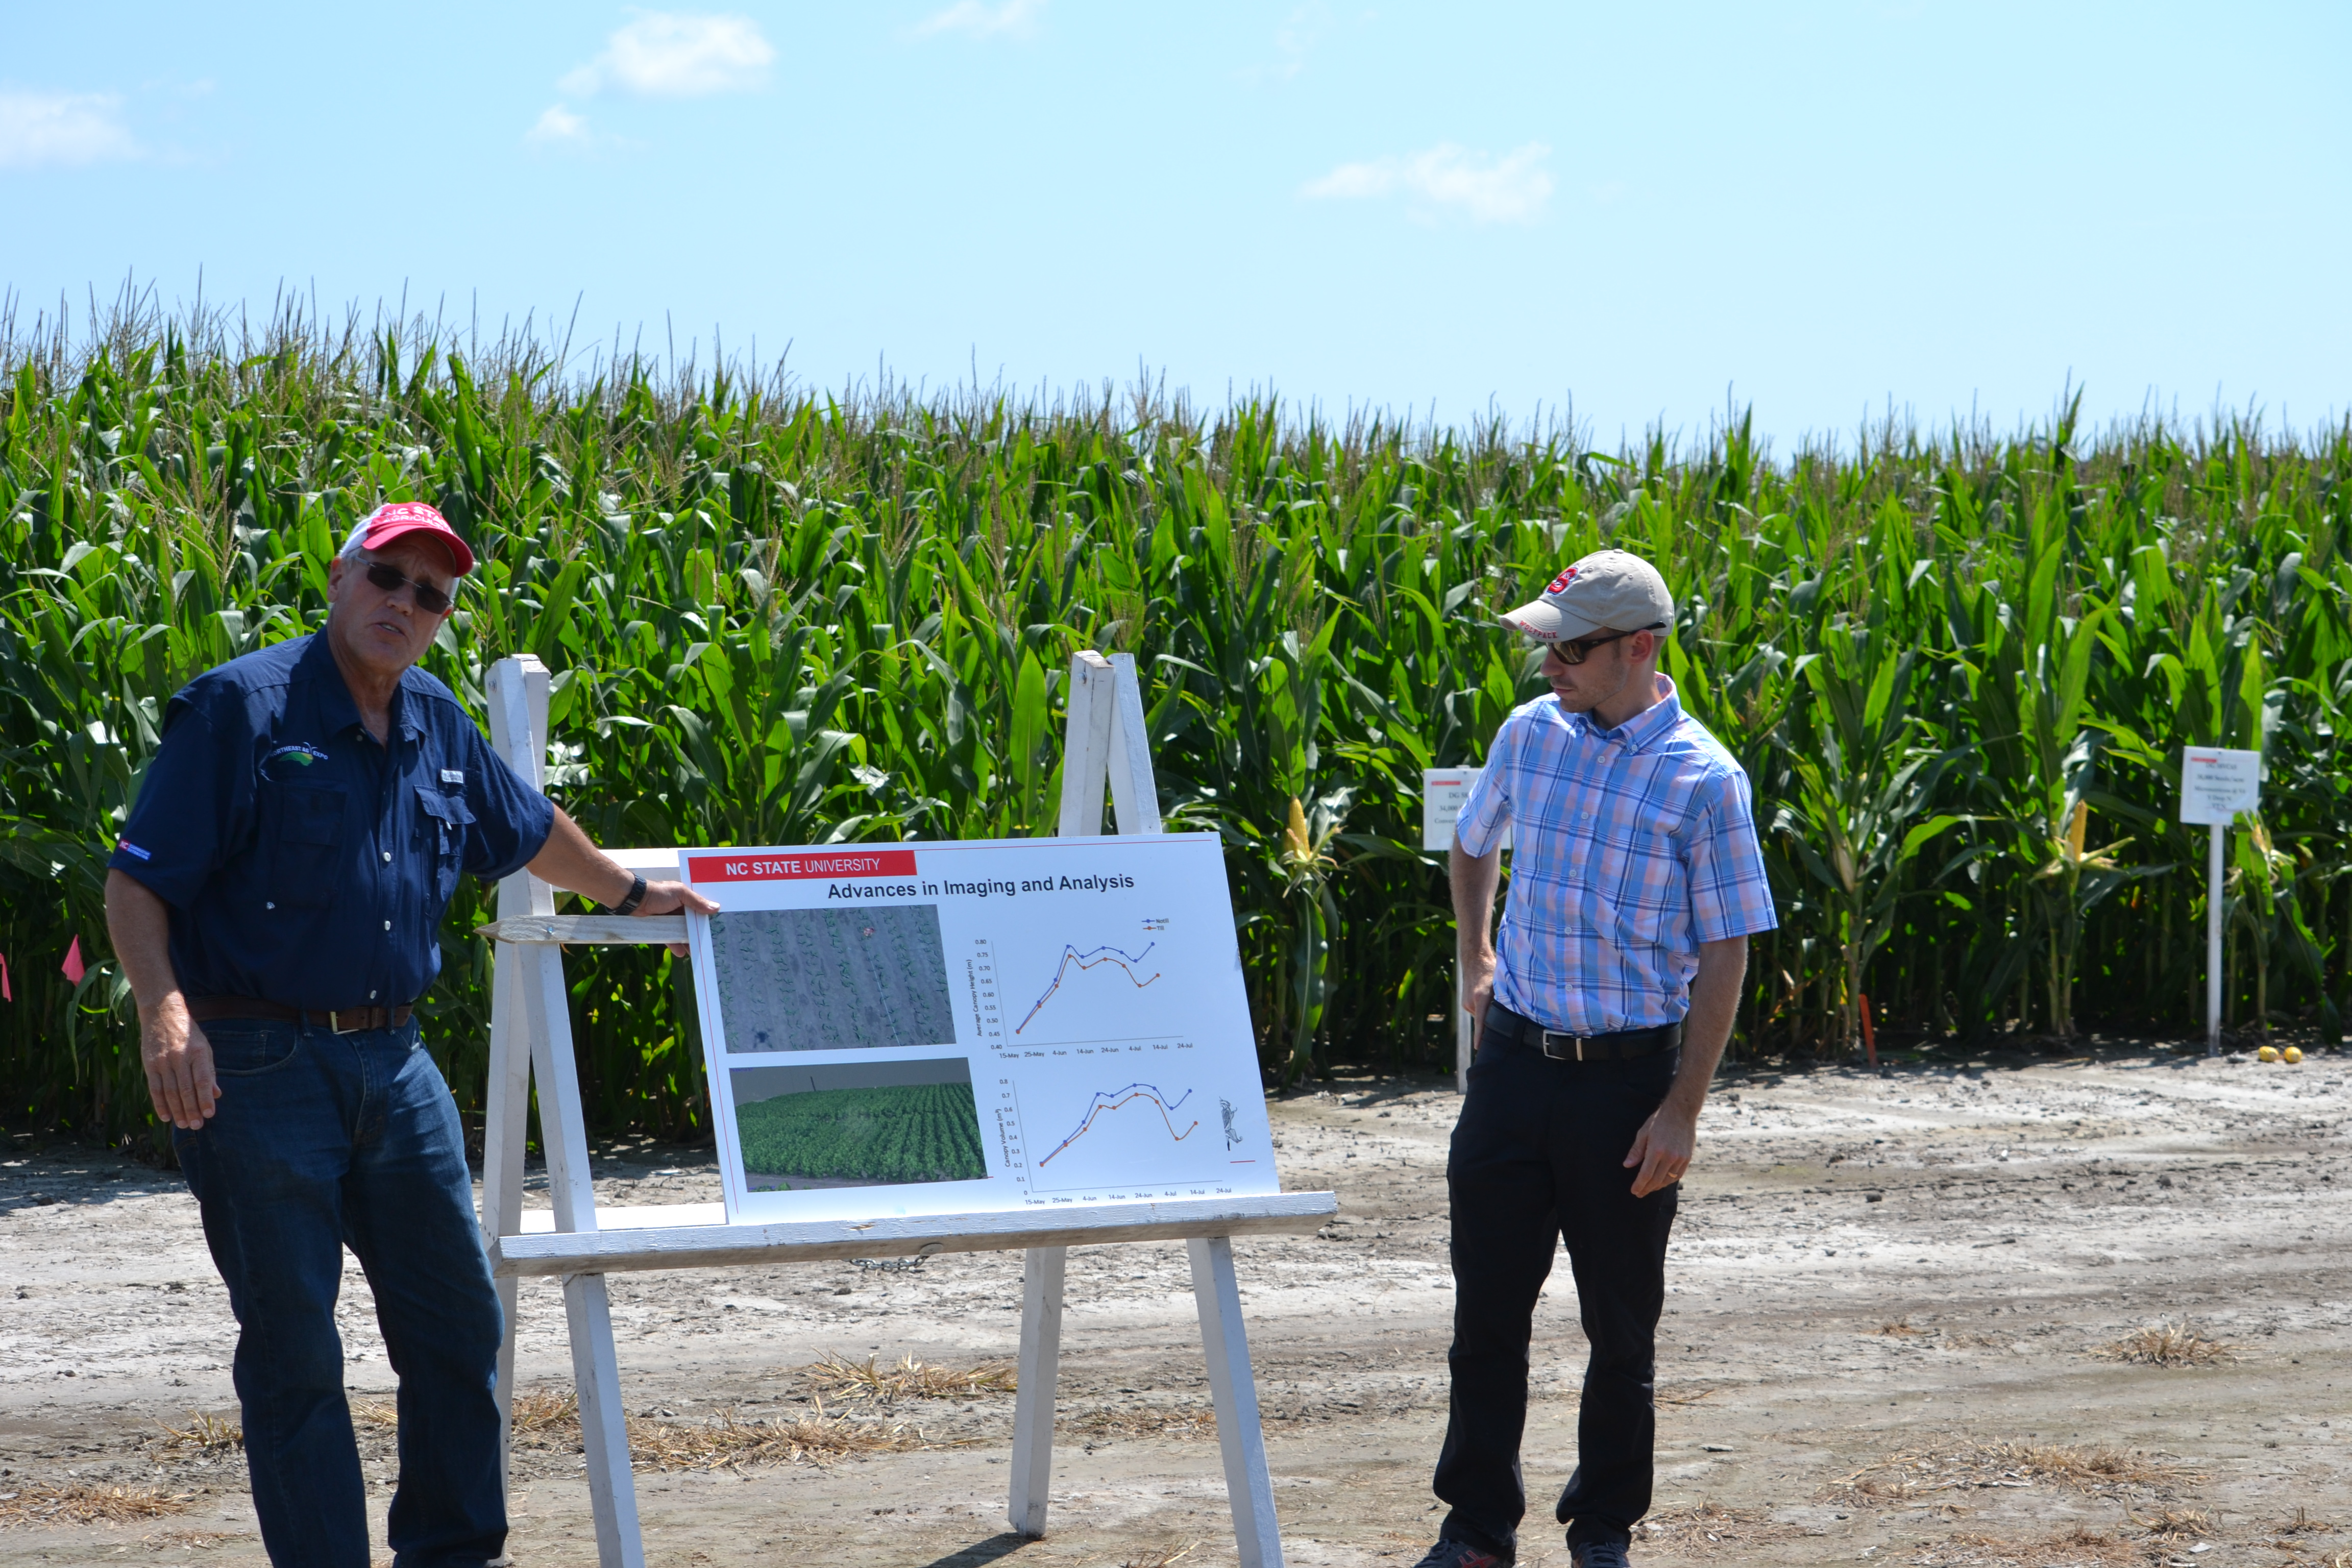 2 people looking at farm info with corn in background